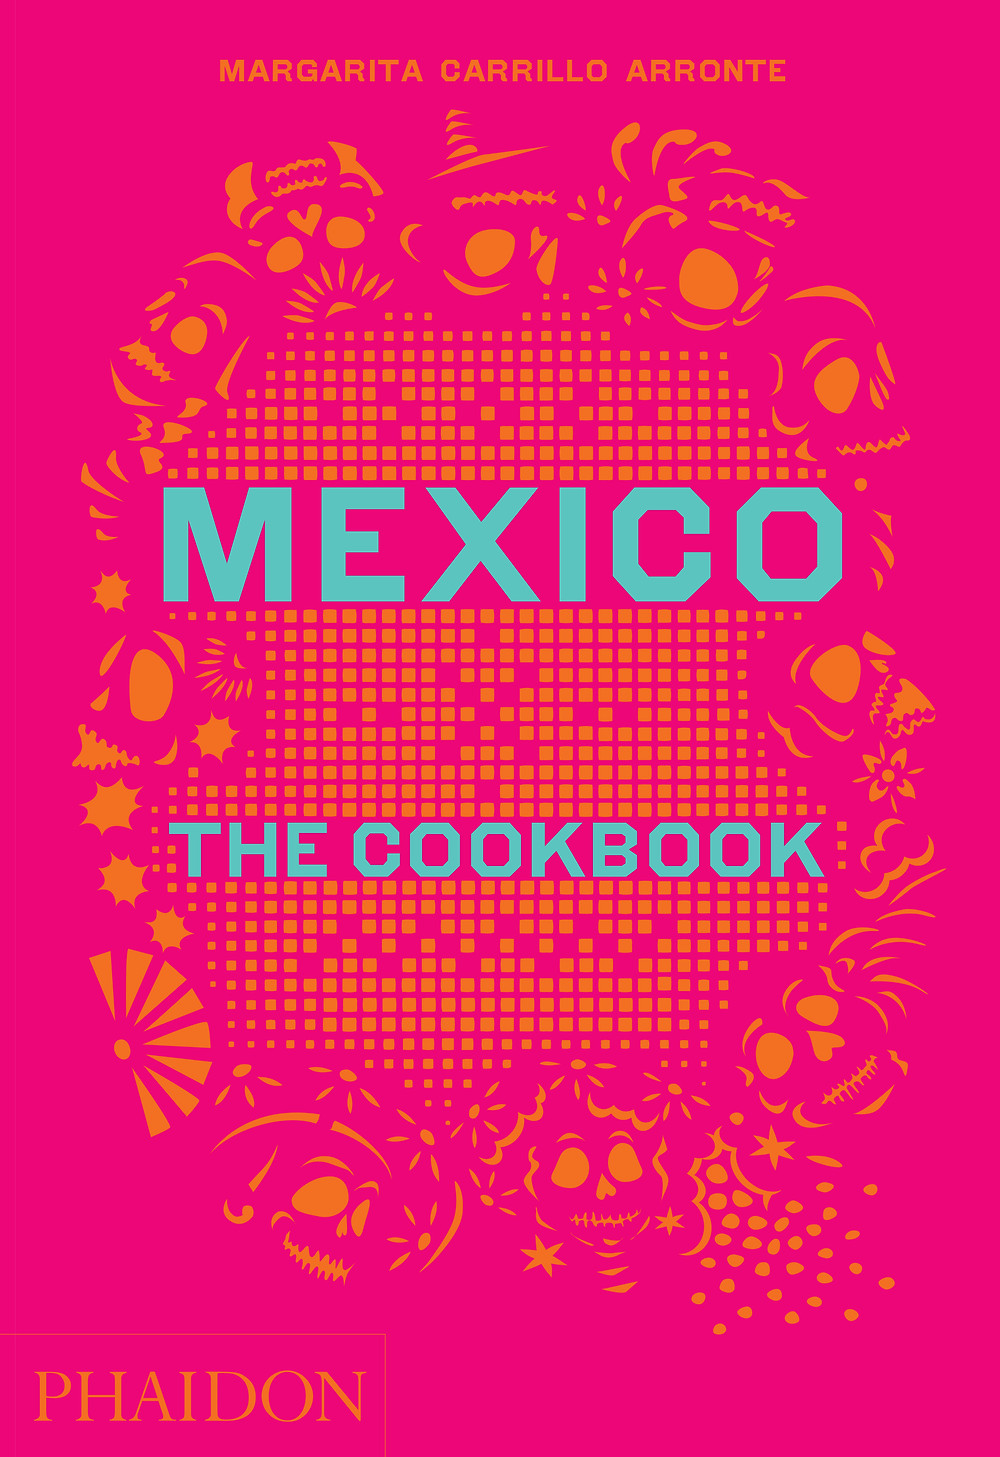 Mexico, the Cookbook HB 2D 9780714867526.jpg